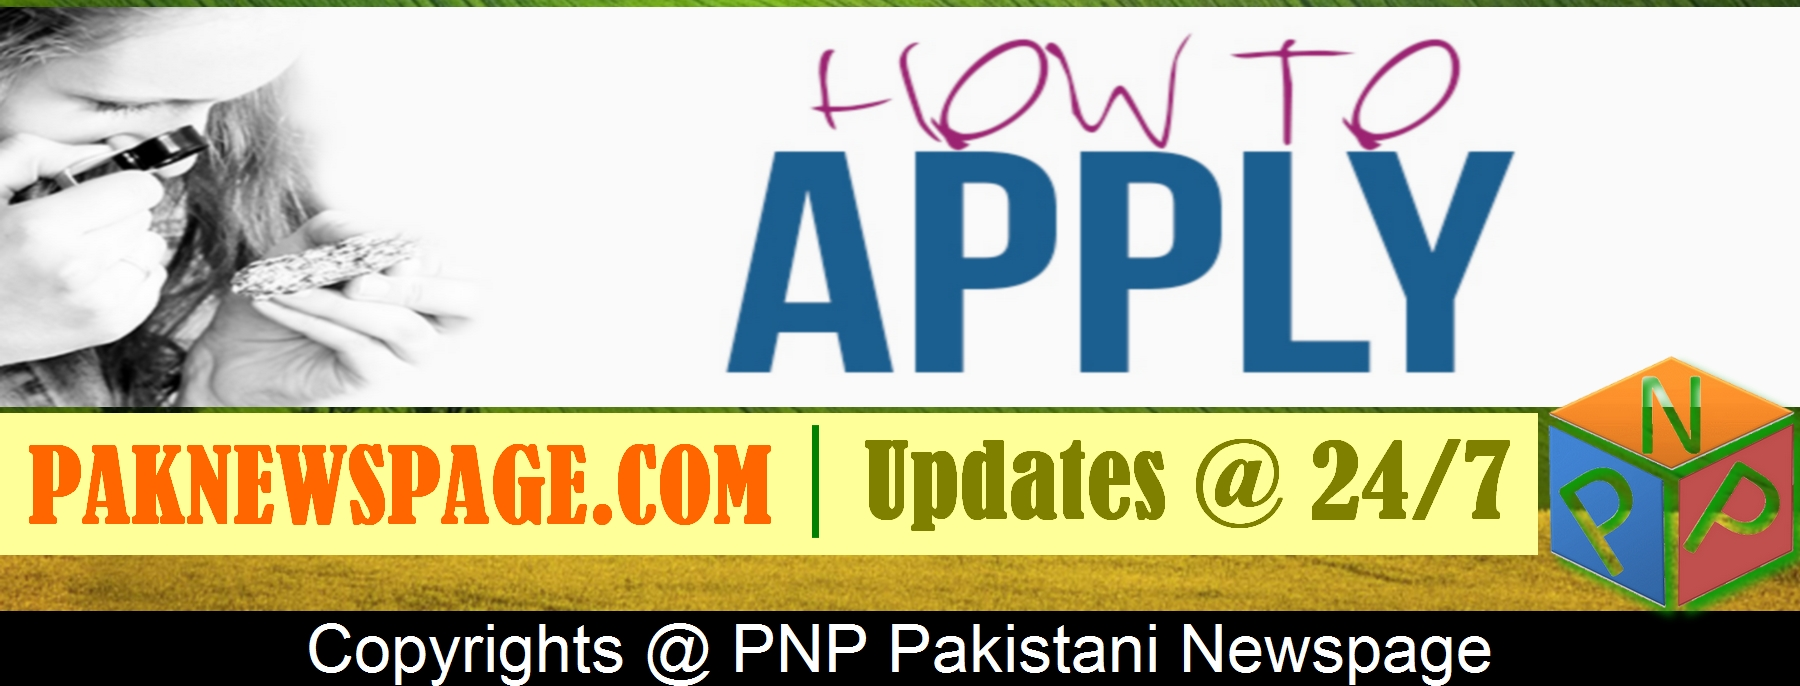 PNP Pakistani Newspage How to Apply